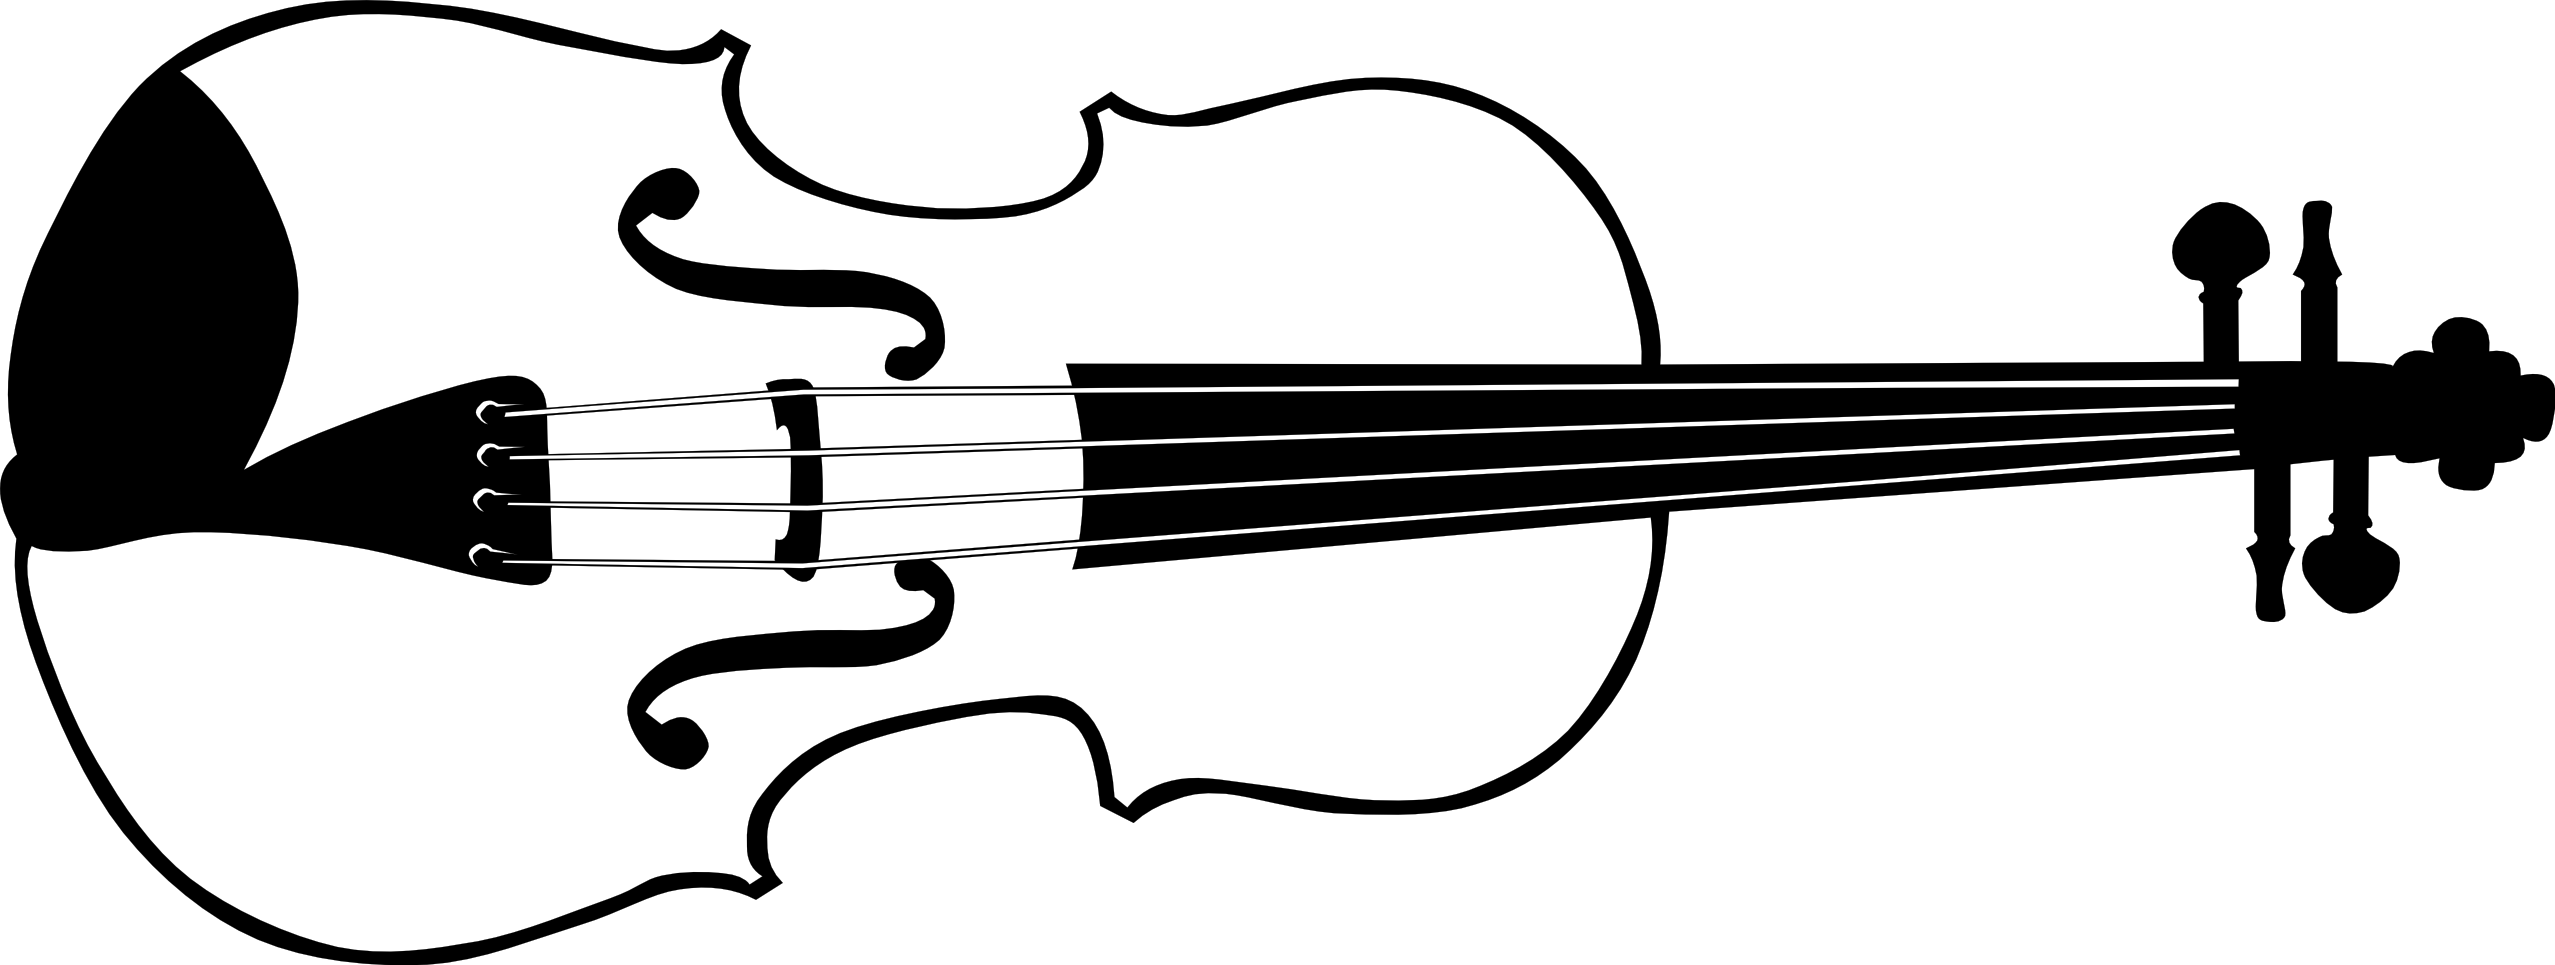 Free black and white musicians bow clipart